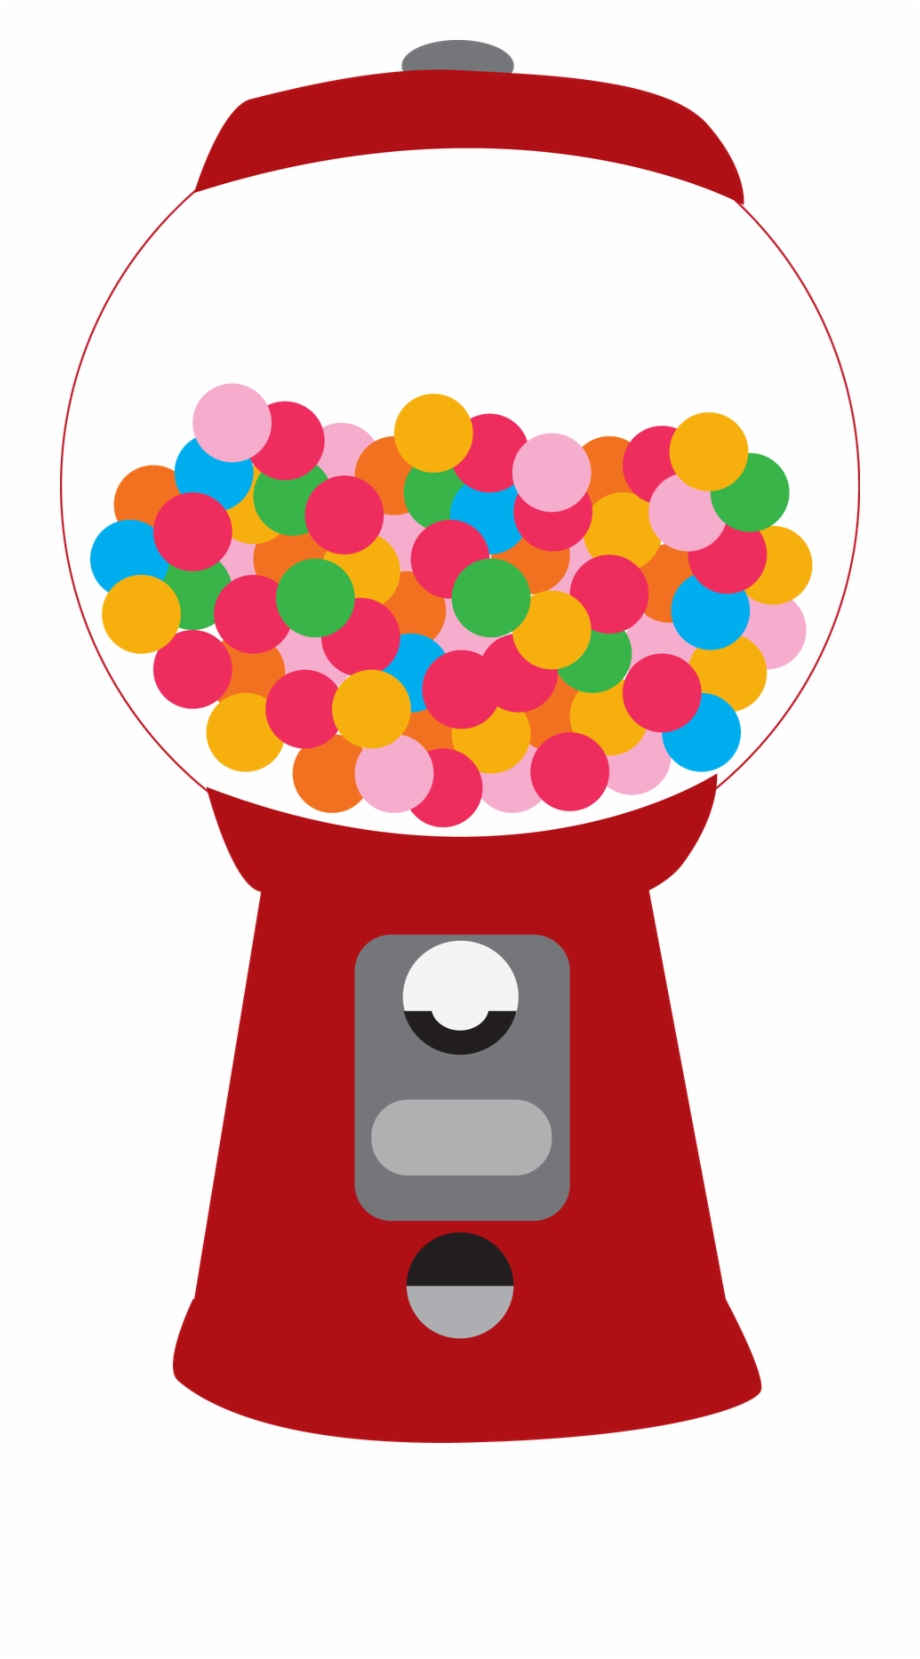 Gum clipart candy machine. Gumball printable bubble